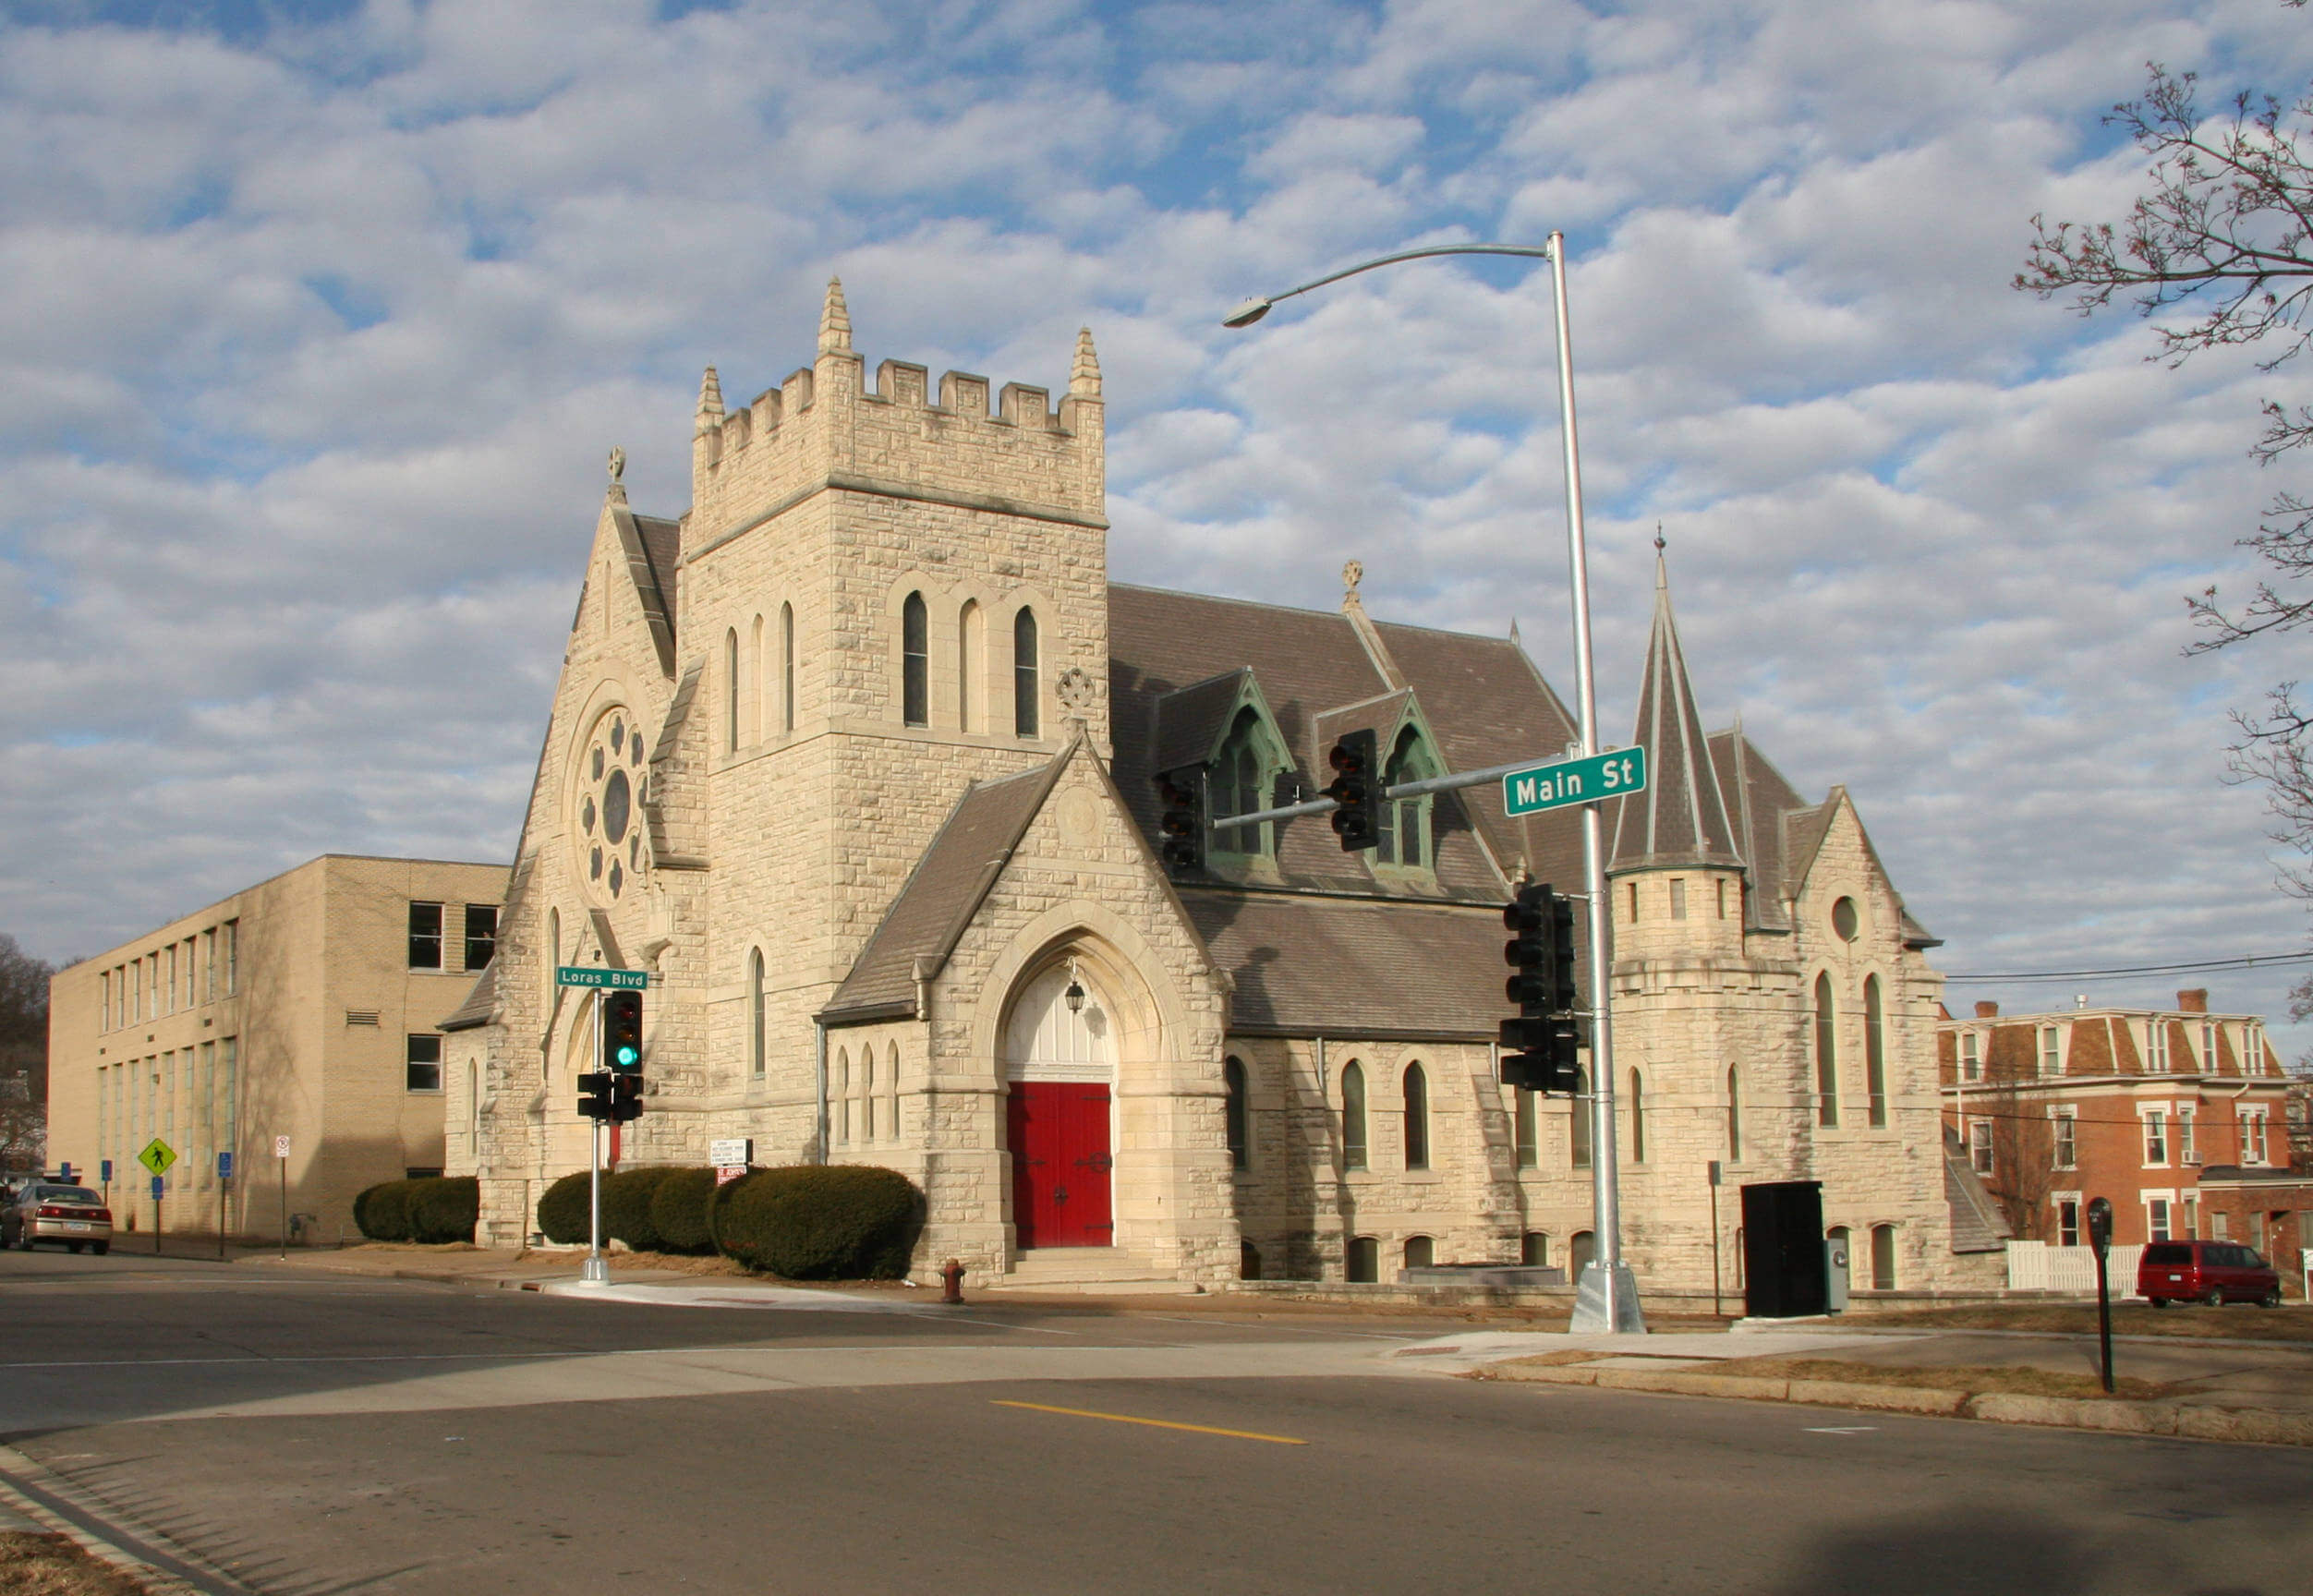 Image of St John's Episcopal Church Building at 14th and Main St. Dubuque